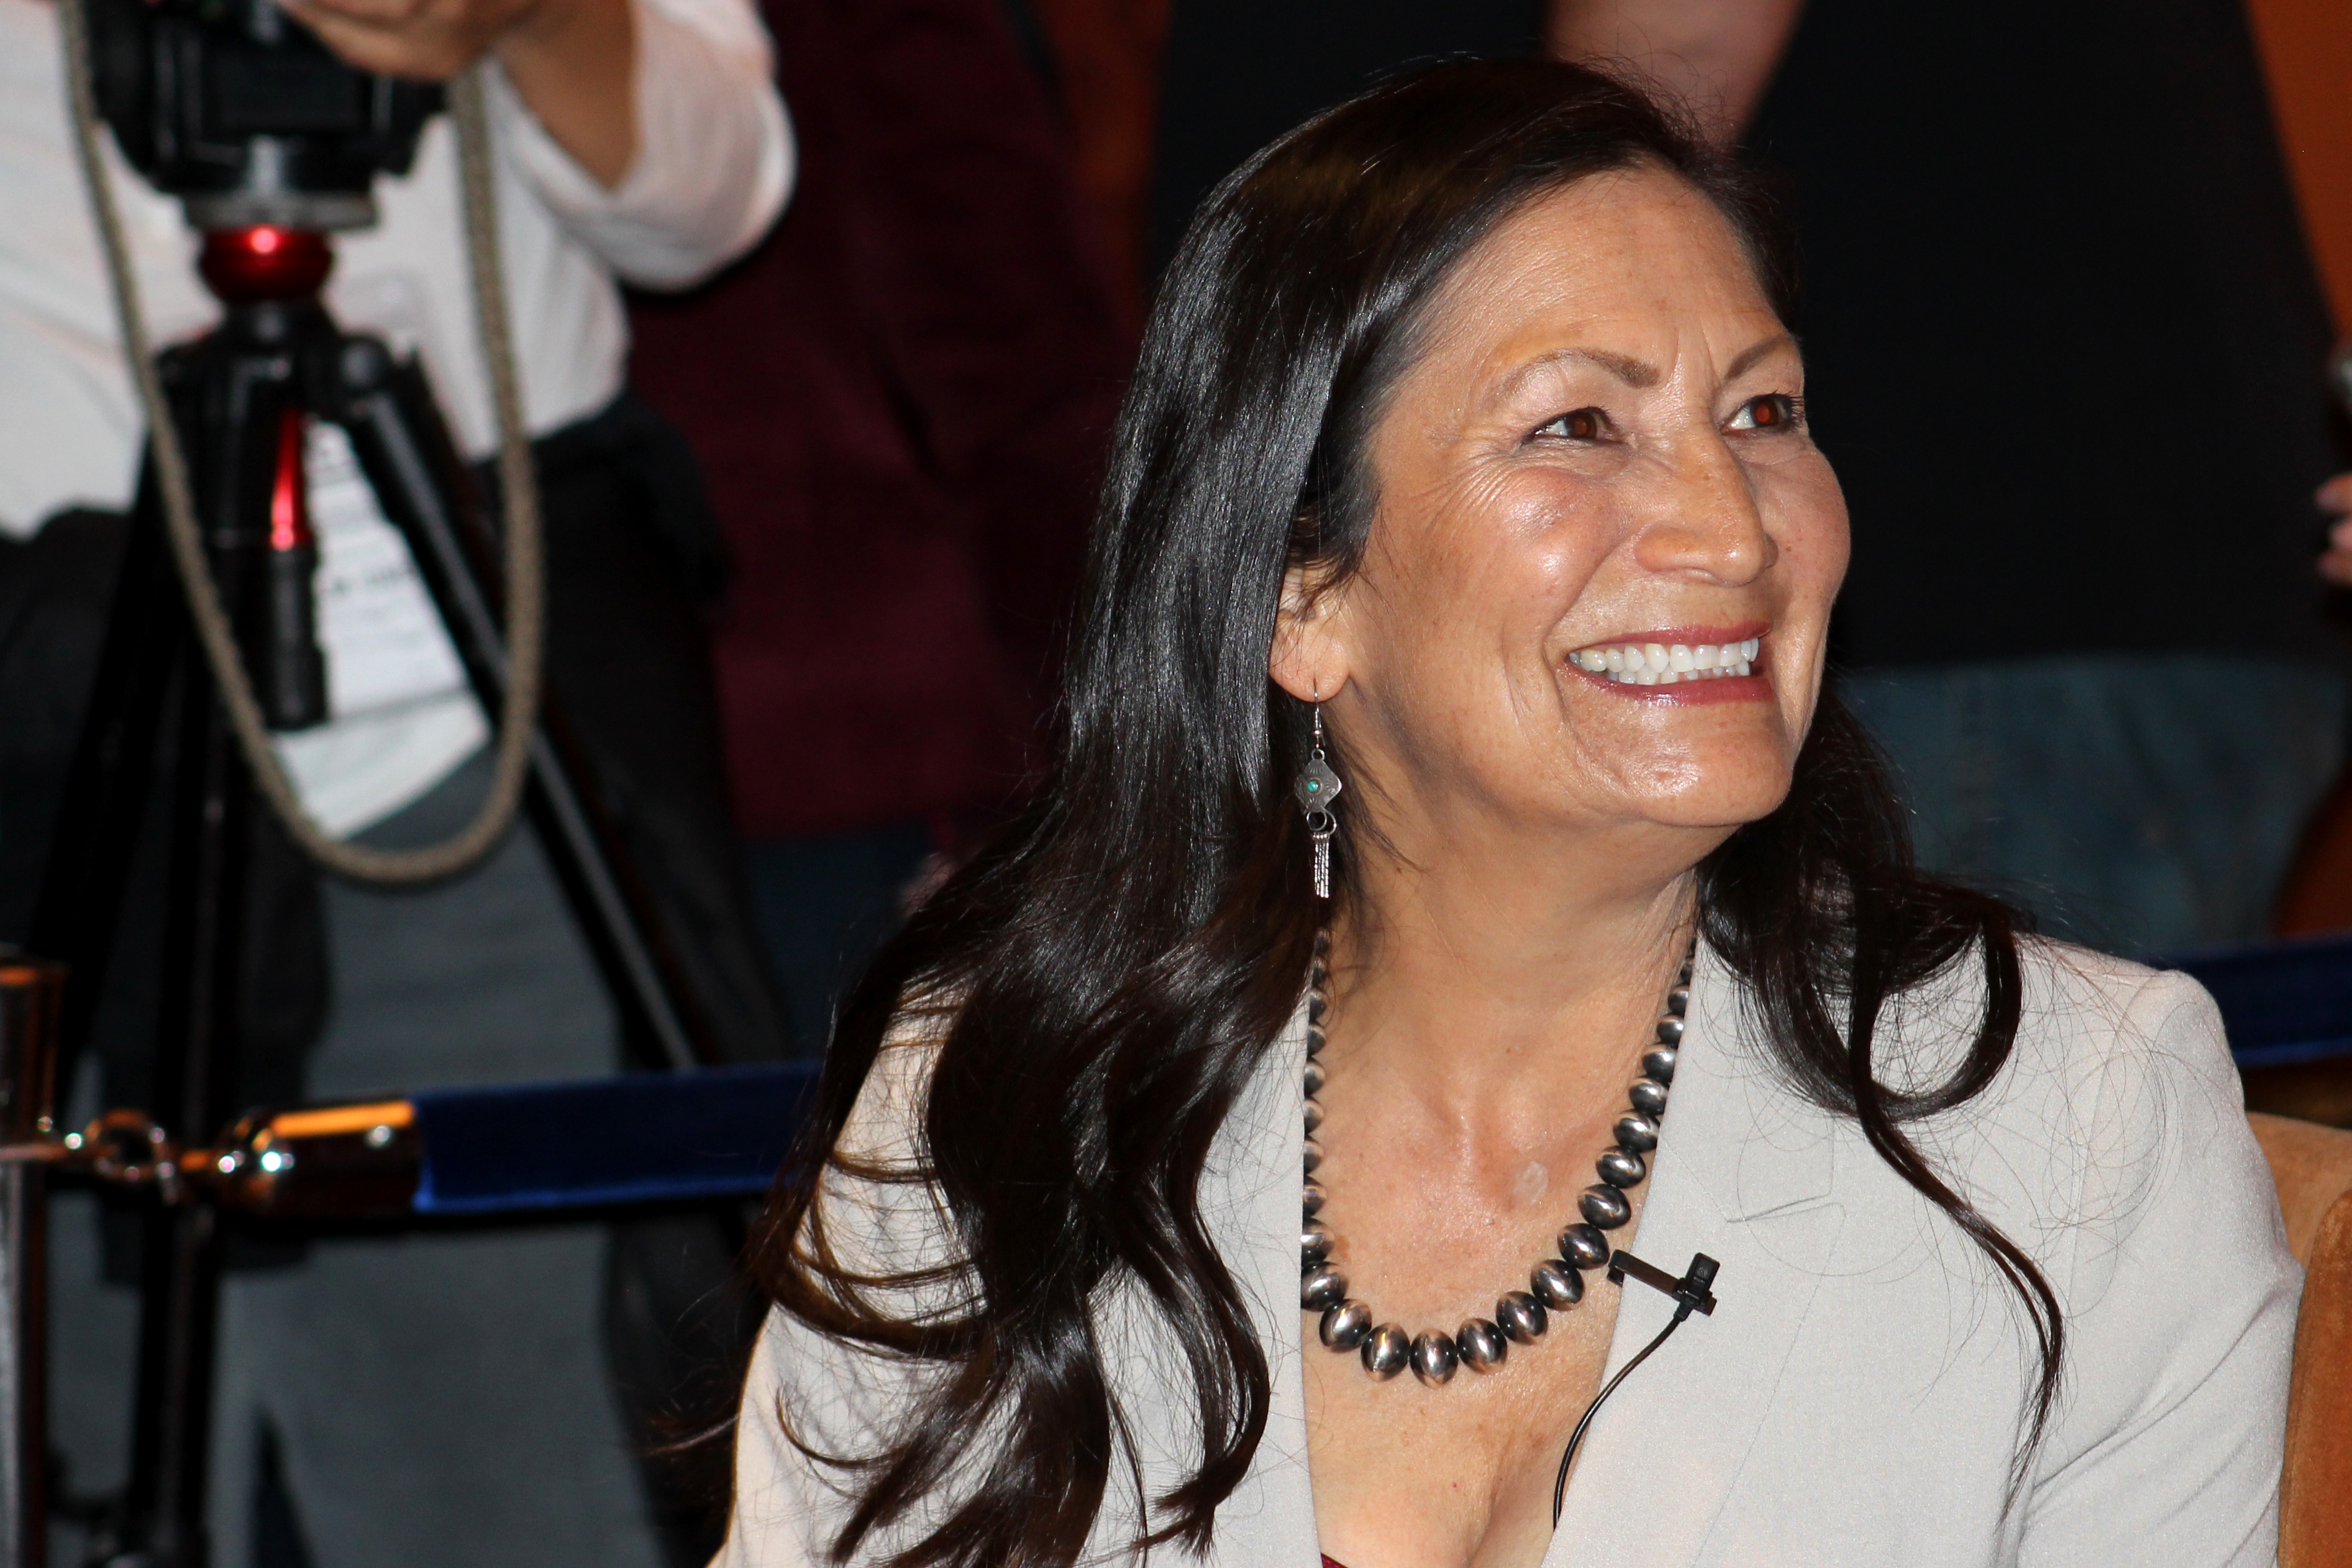 Haaland Wins Nm 1st Congressional District New Mexico